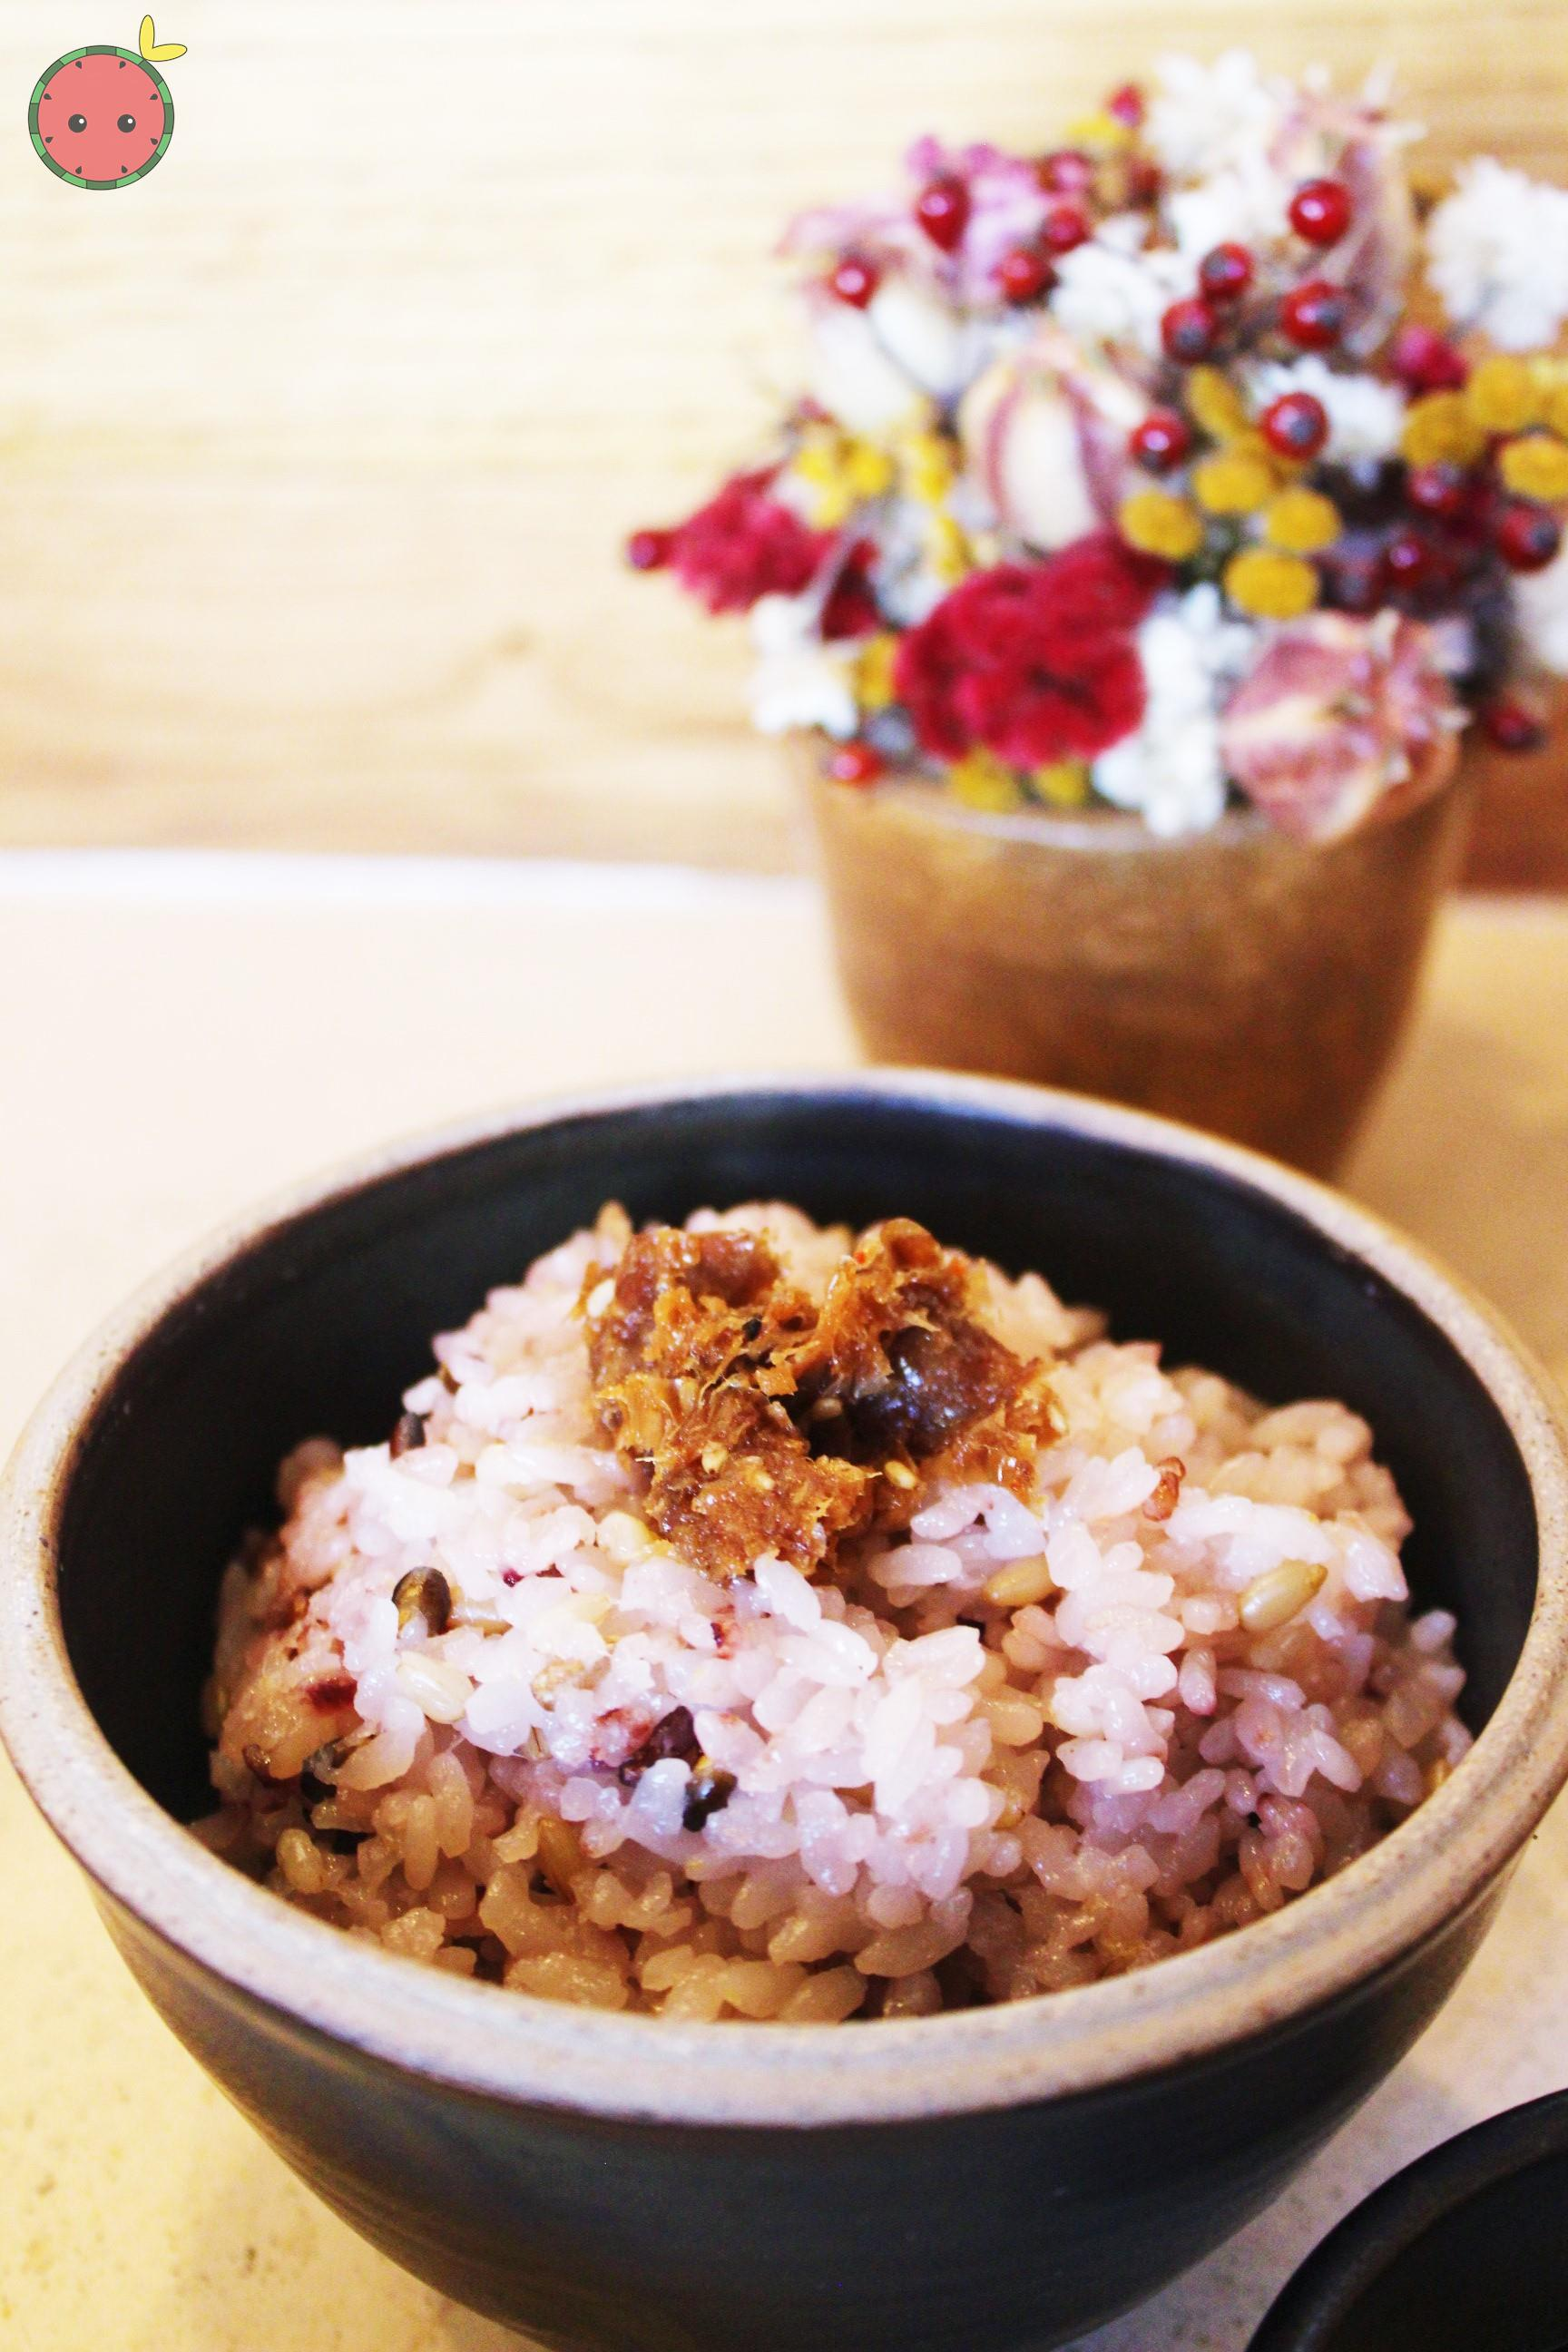 Six grain rice with bonito flakes soaked in house soy sauce and sesame oil